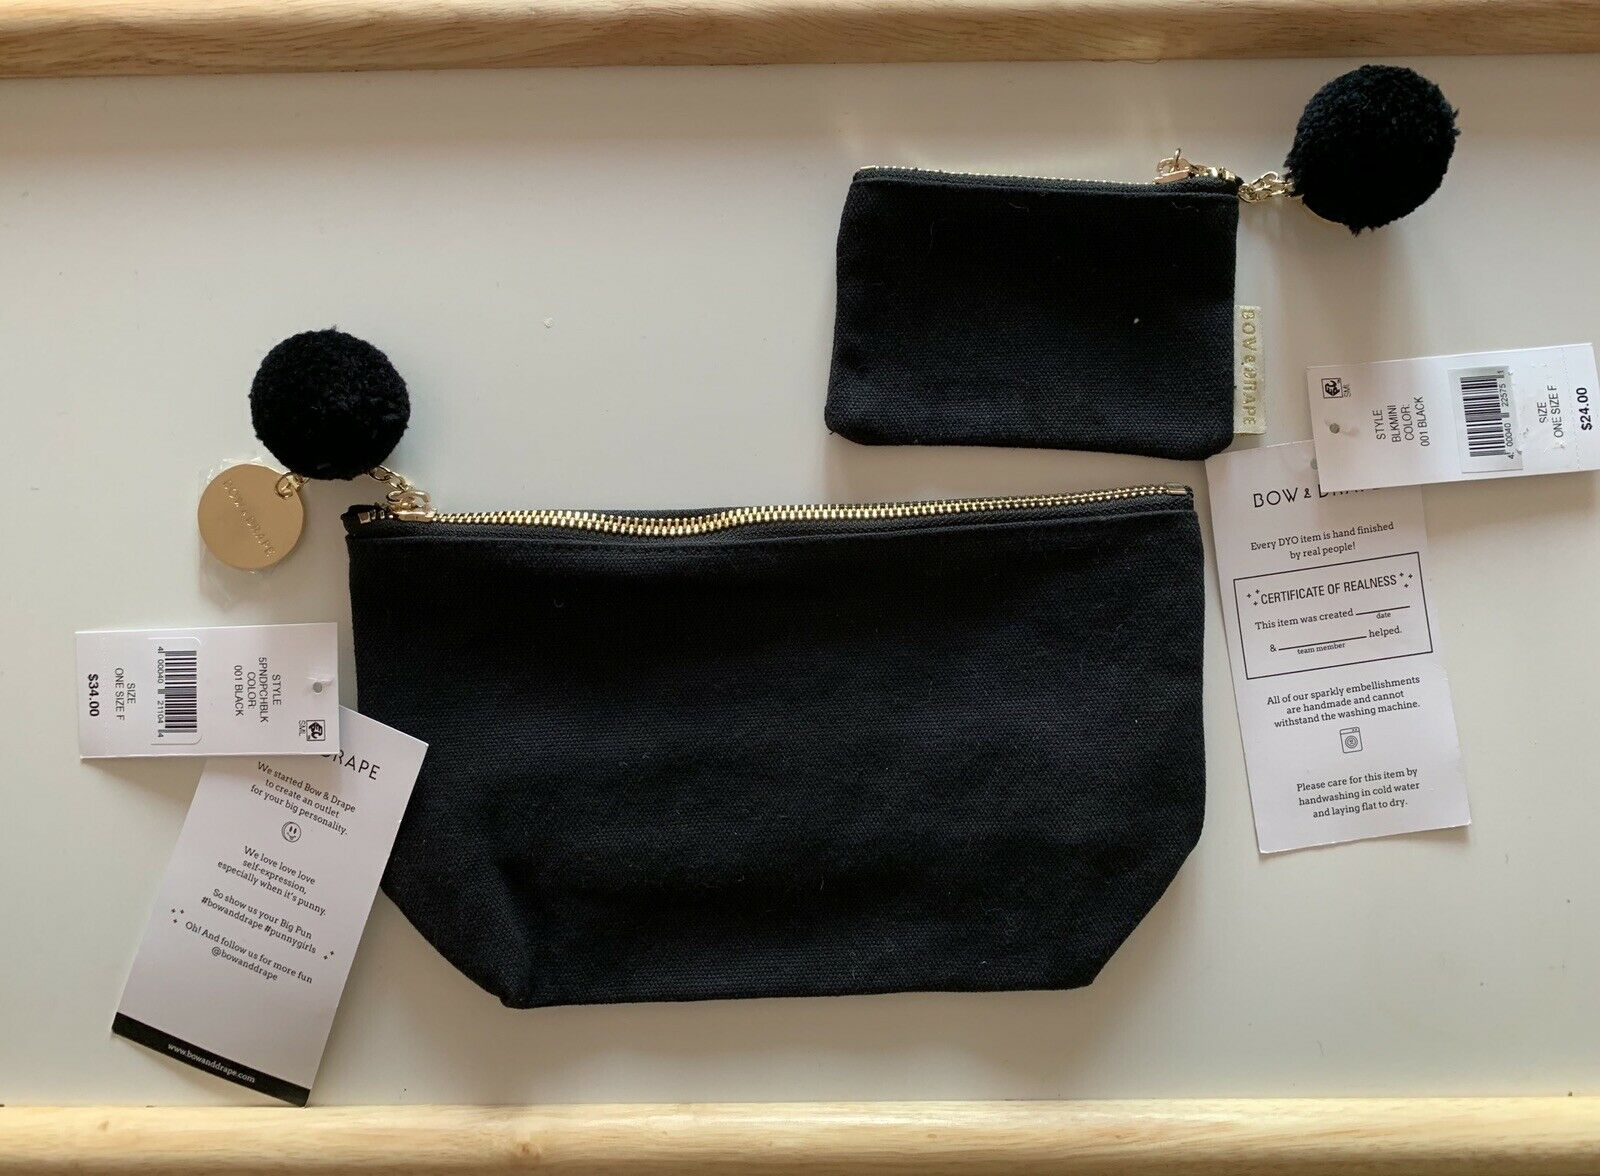 NWT, Bow & Drape black Cosmetic pouch bag and coin holder